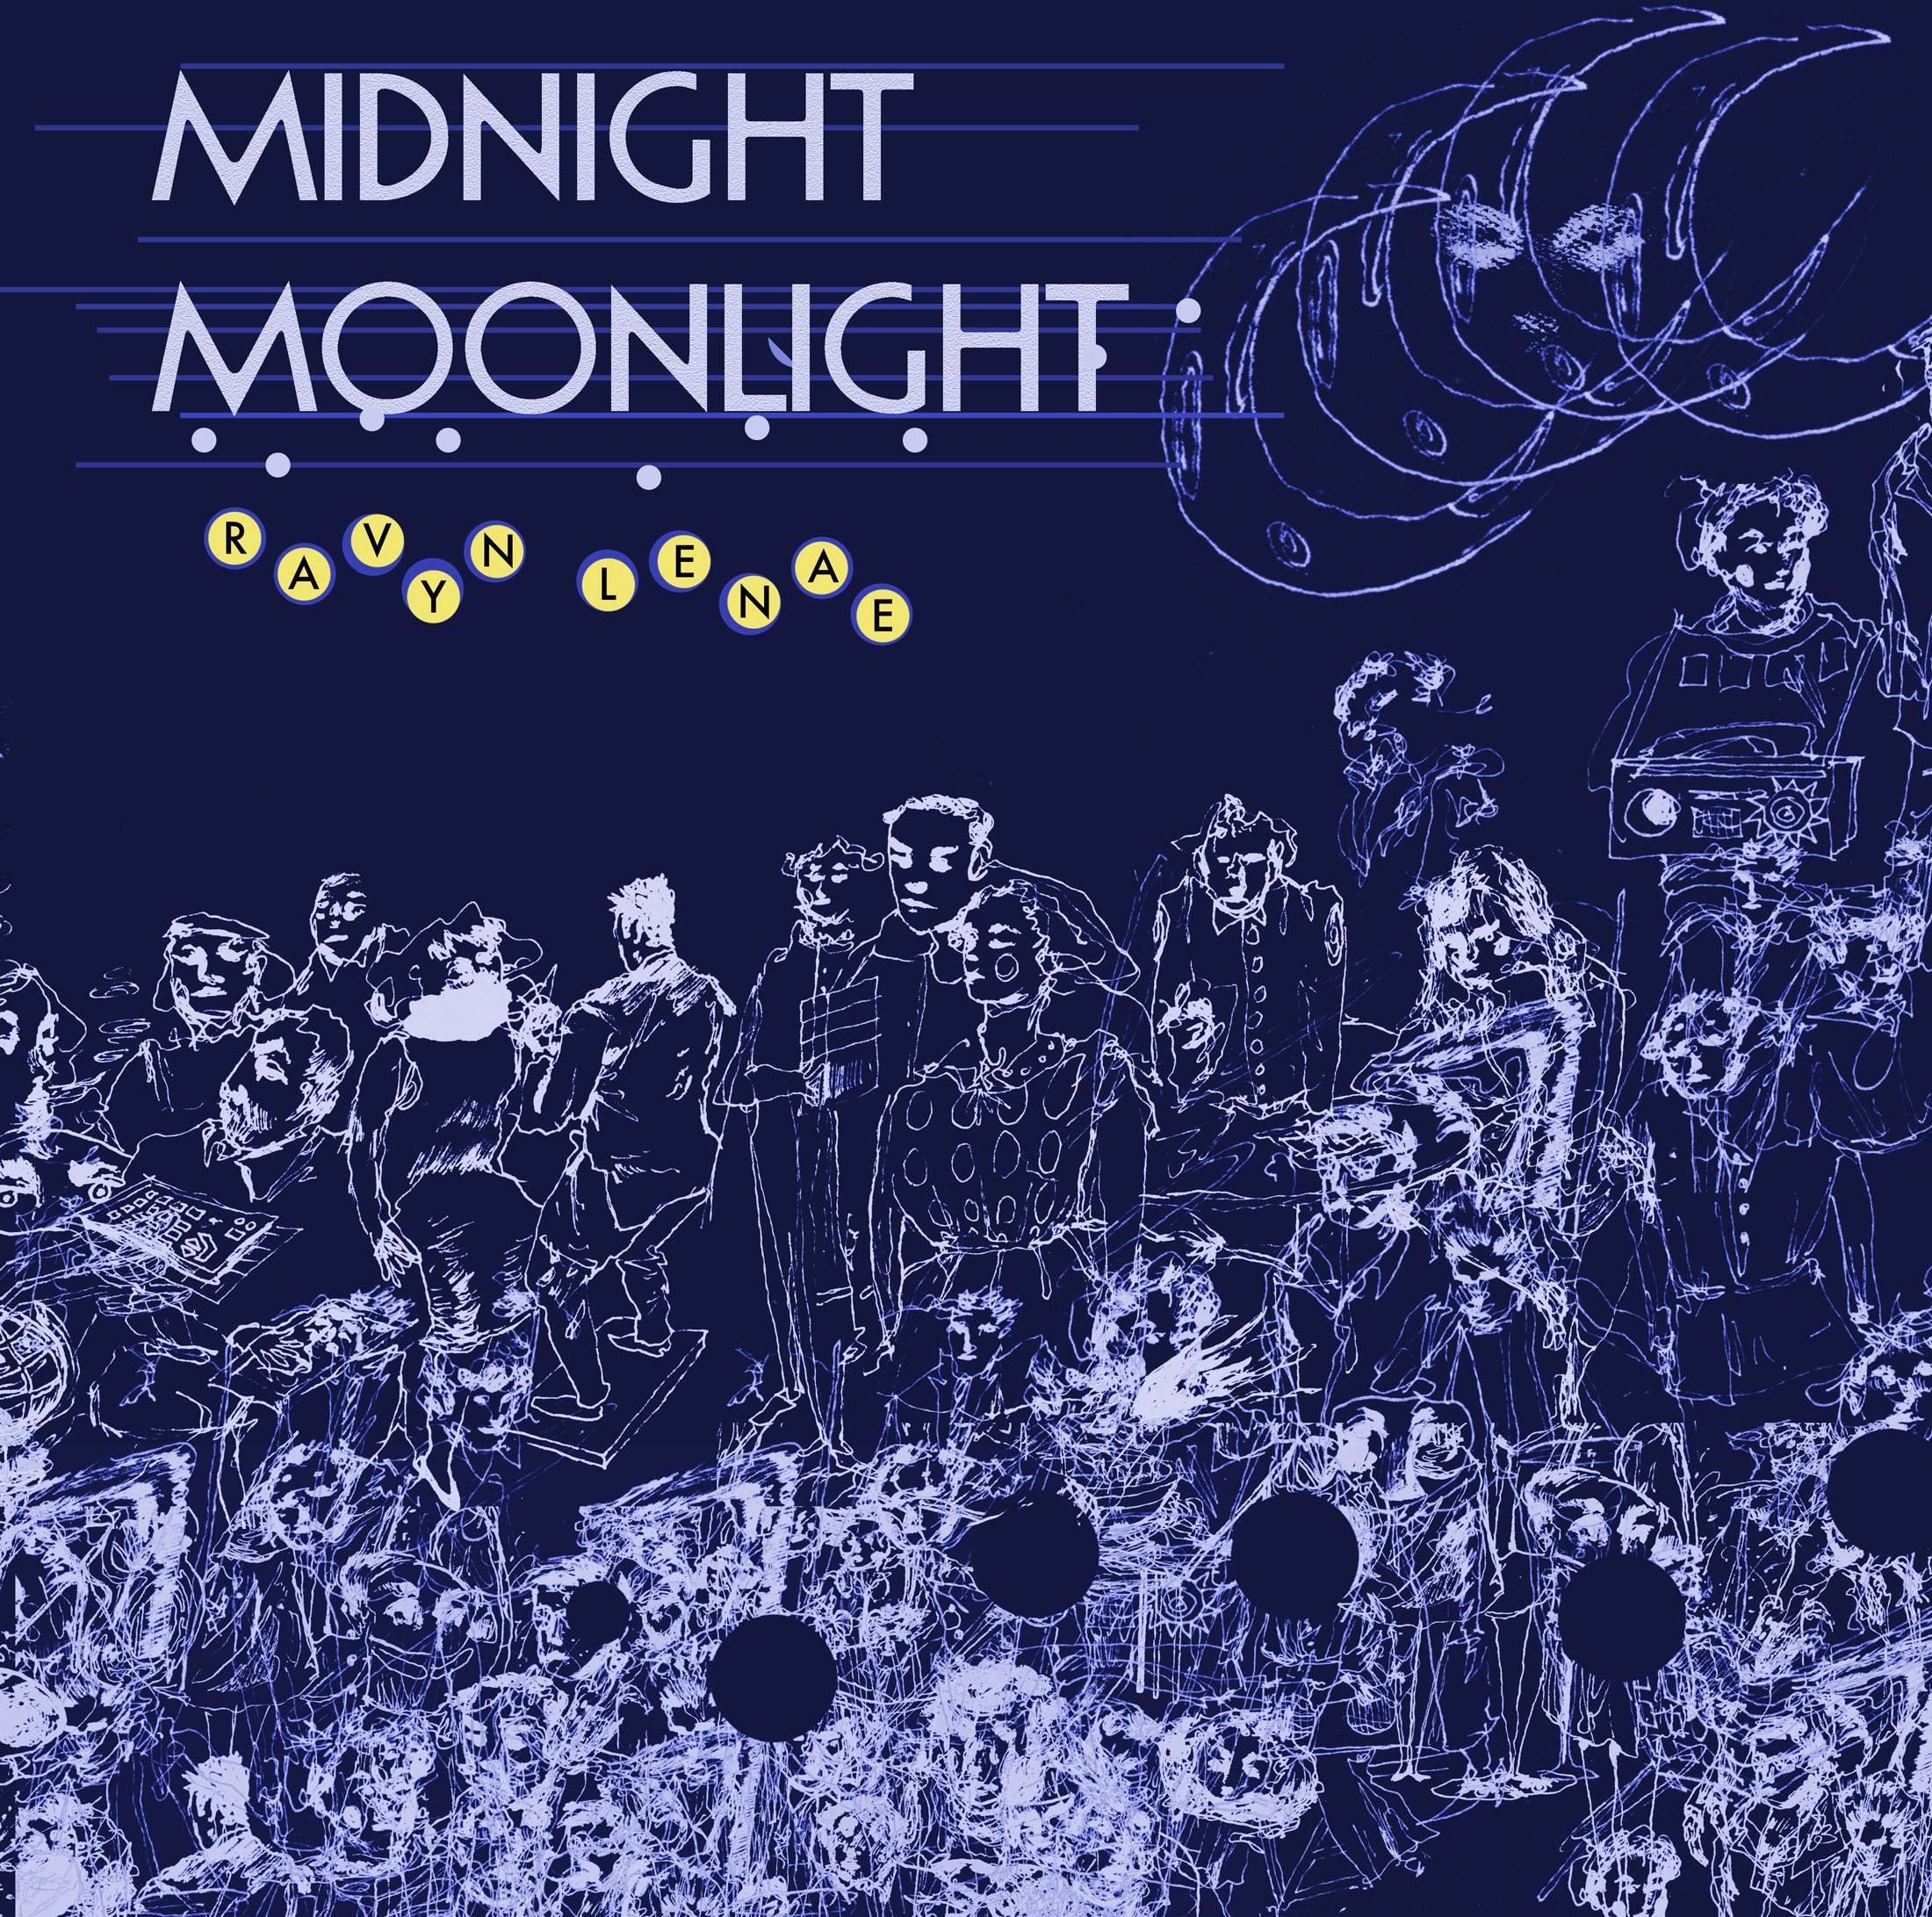 https://itunes.apple.com/us/album/midnight-moonlight-ep/id1209696139